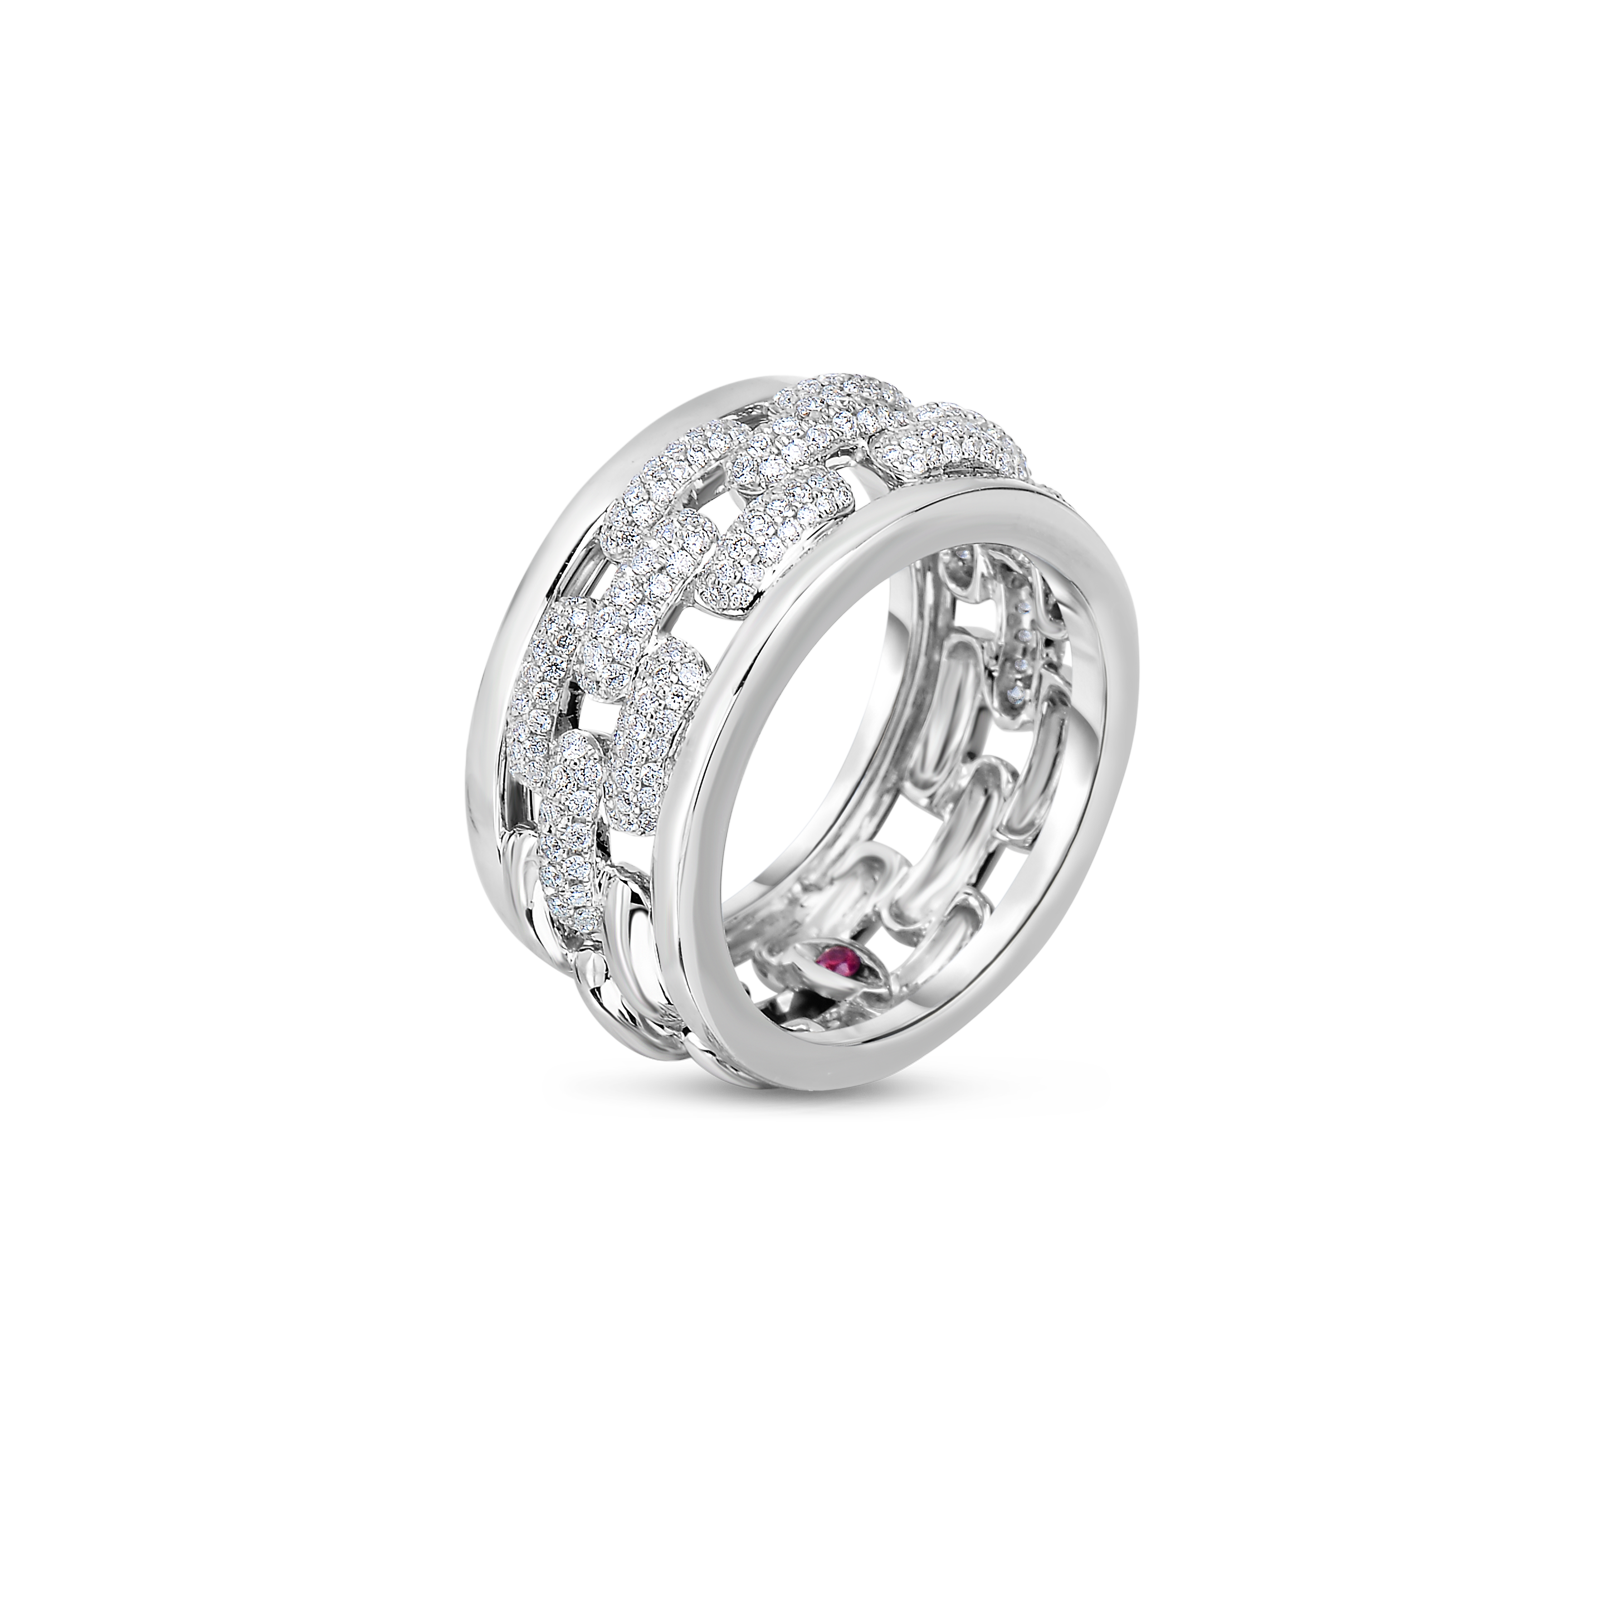 Roberto-Coin-Classic-Diamond-18K-White-Gold-Ring-with-Diamonds-519201AW65X0_SIDE